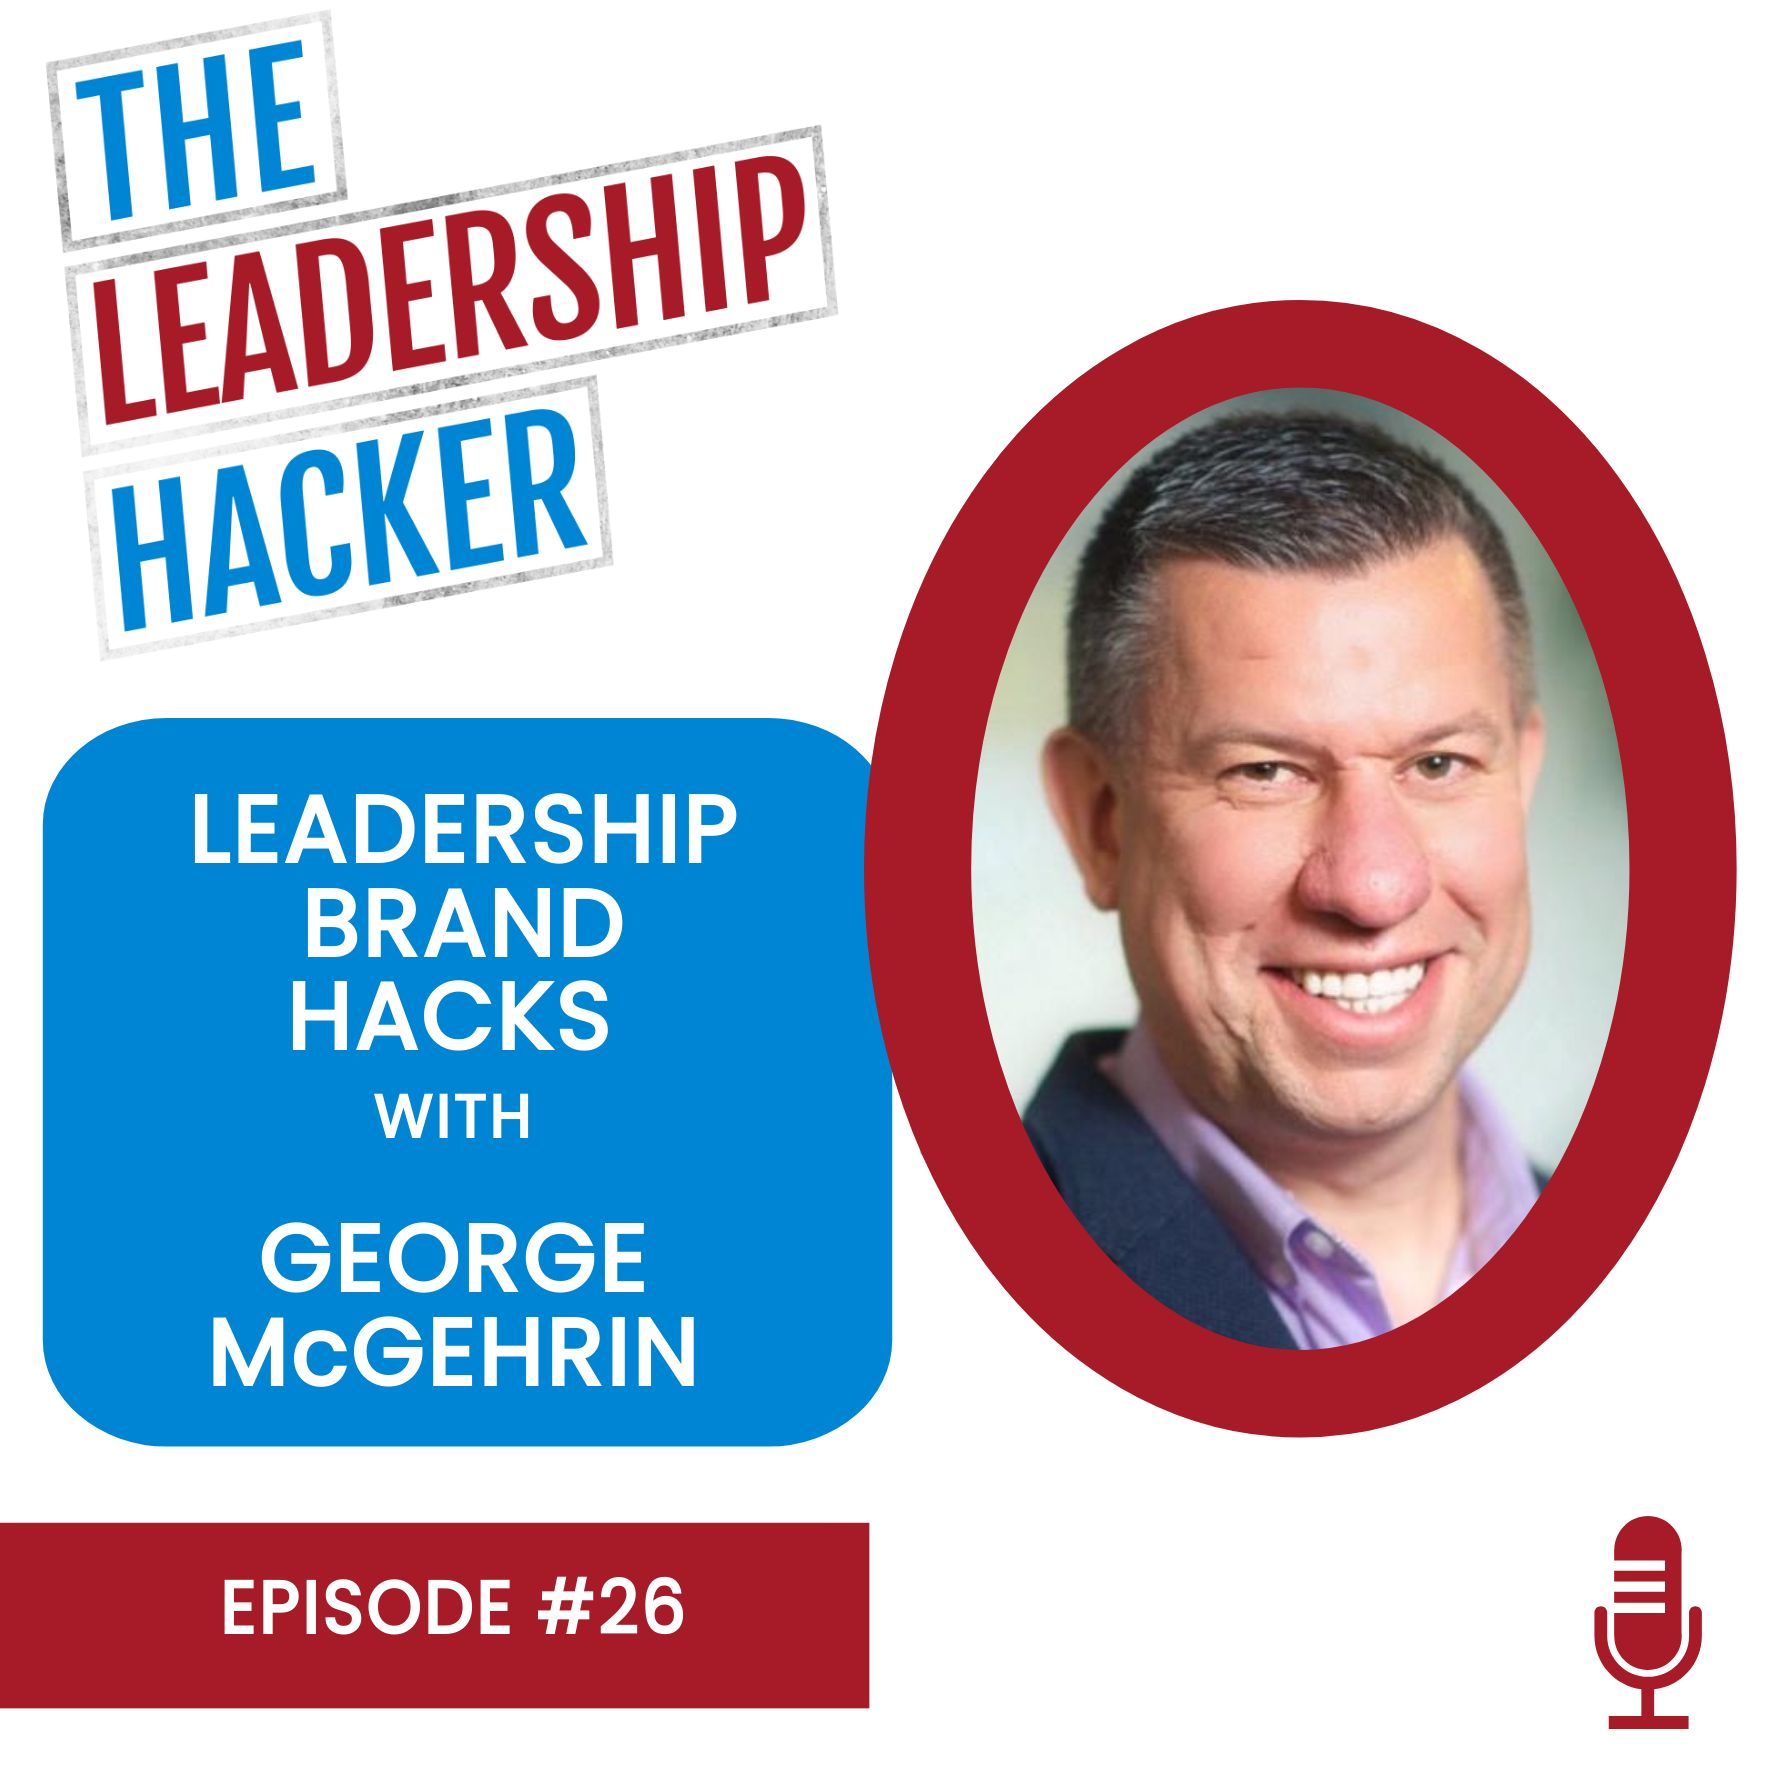 Leadership Brand Hacks with George McGehrin